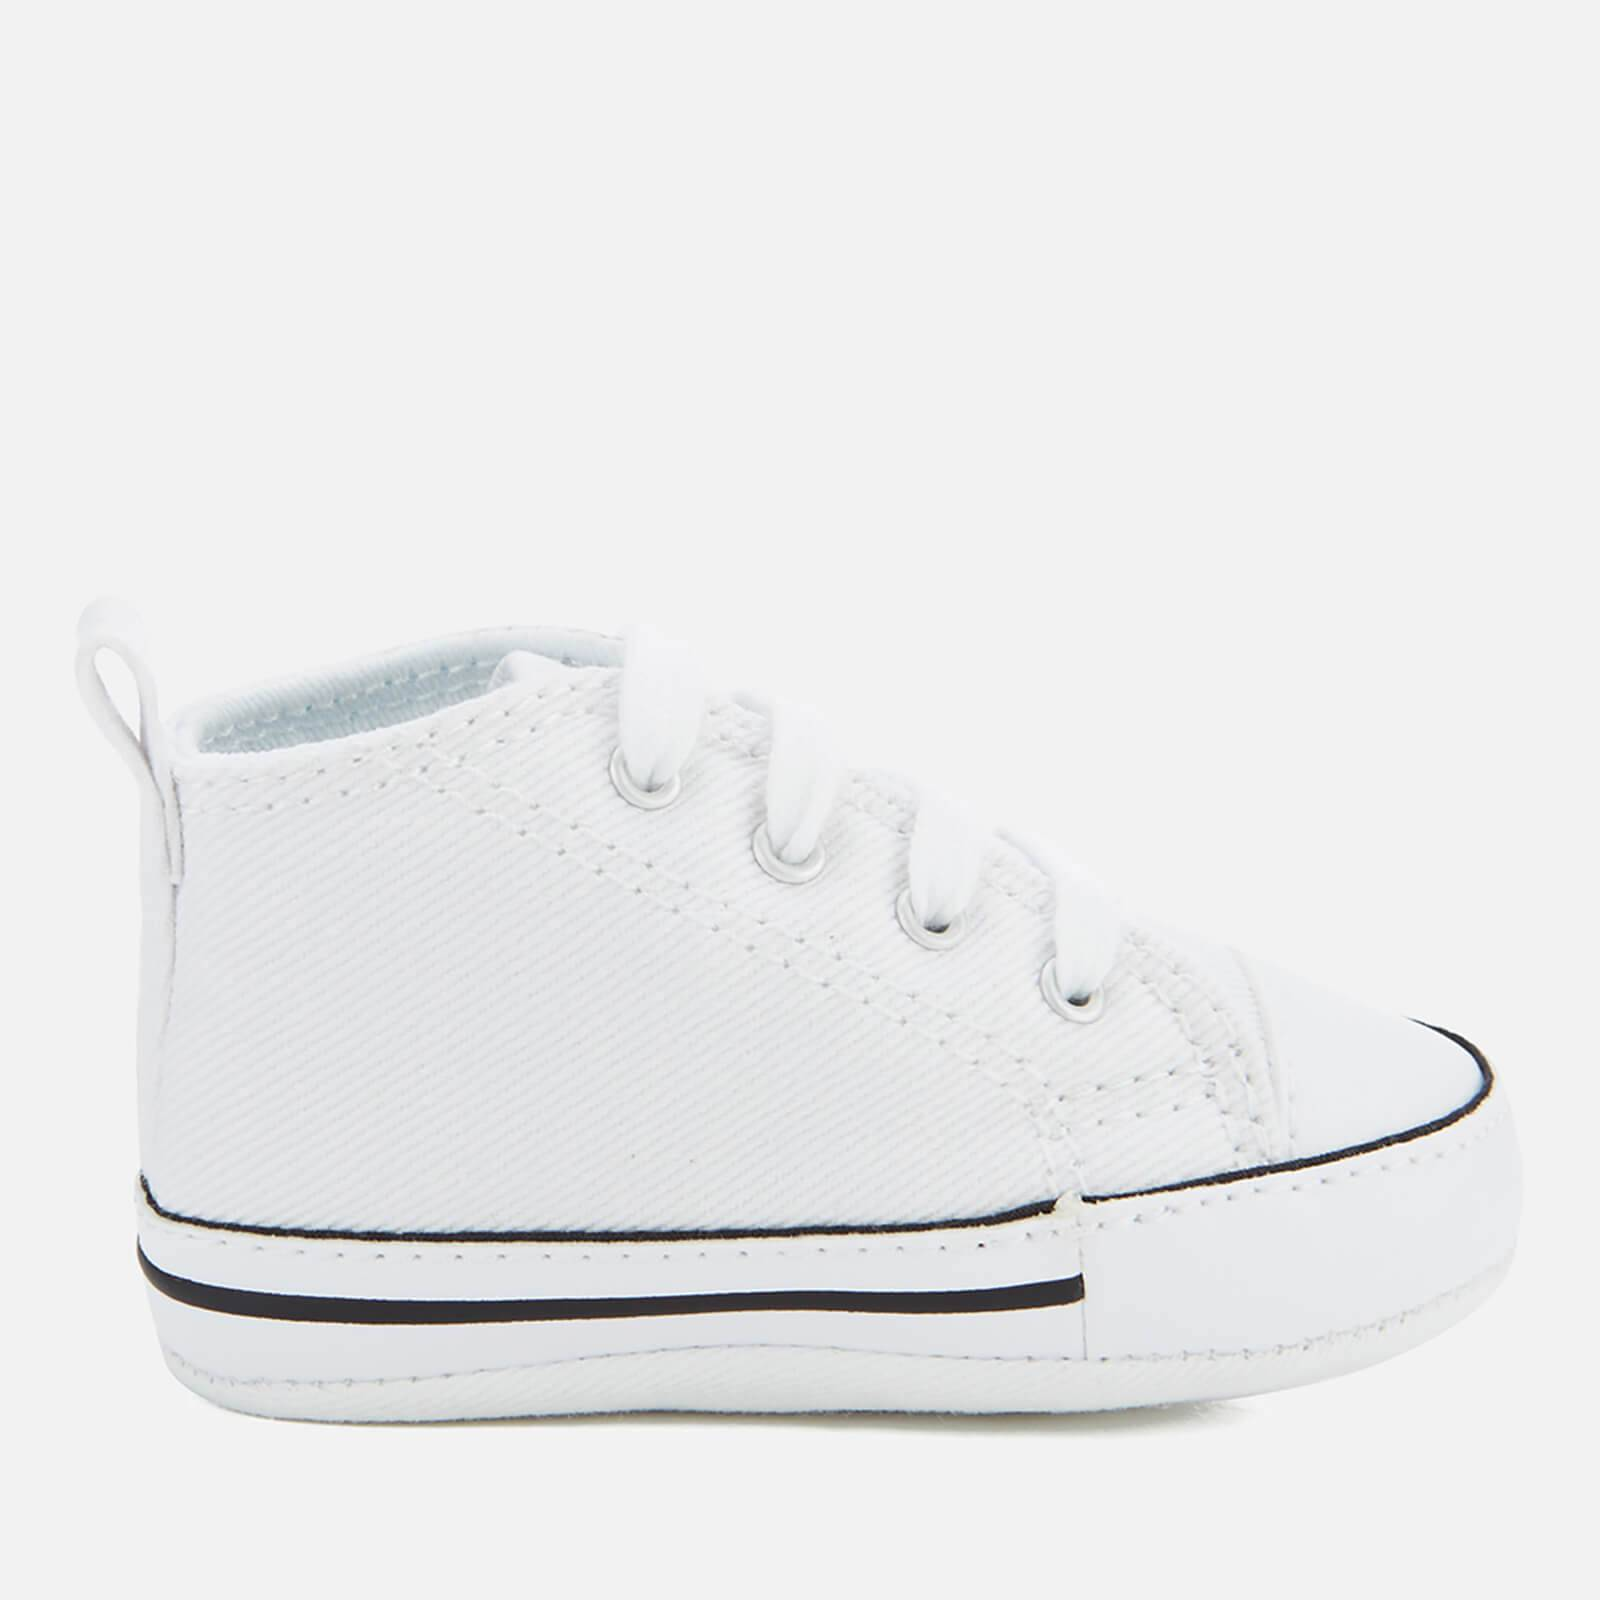 Converse Babies Chuck Taylor First Star Hi-Top Trainers - White - UK 2 Baby